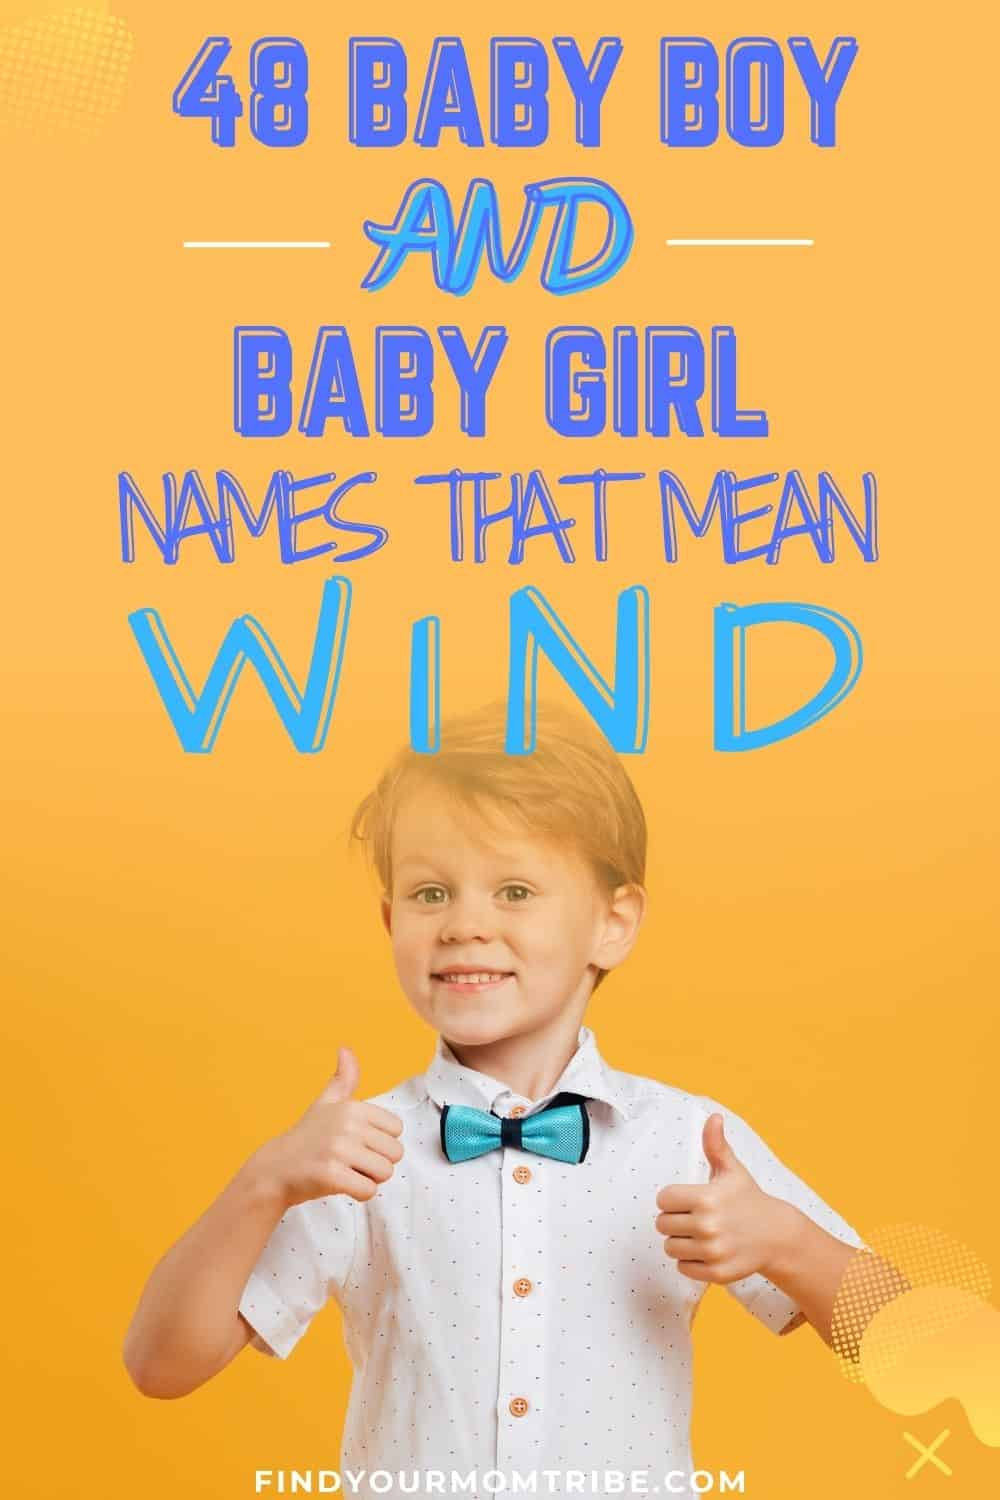 Names That Mean Wind pinterest